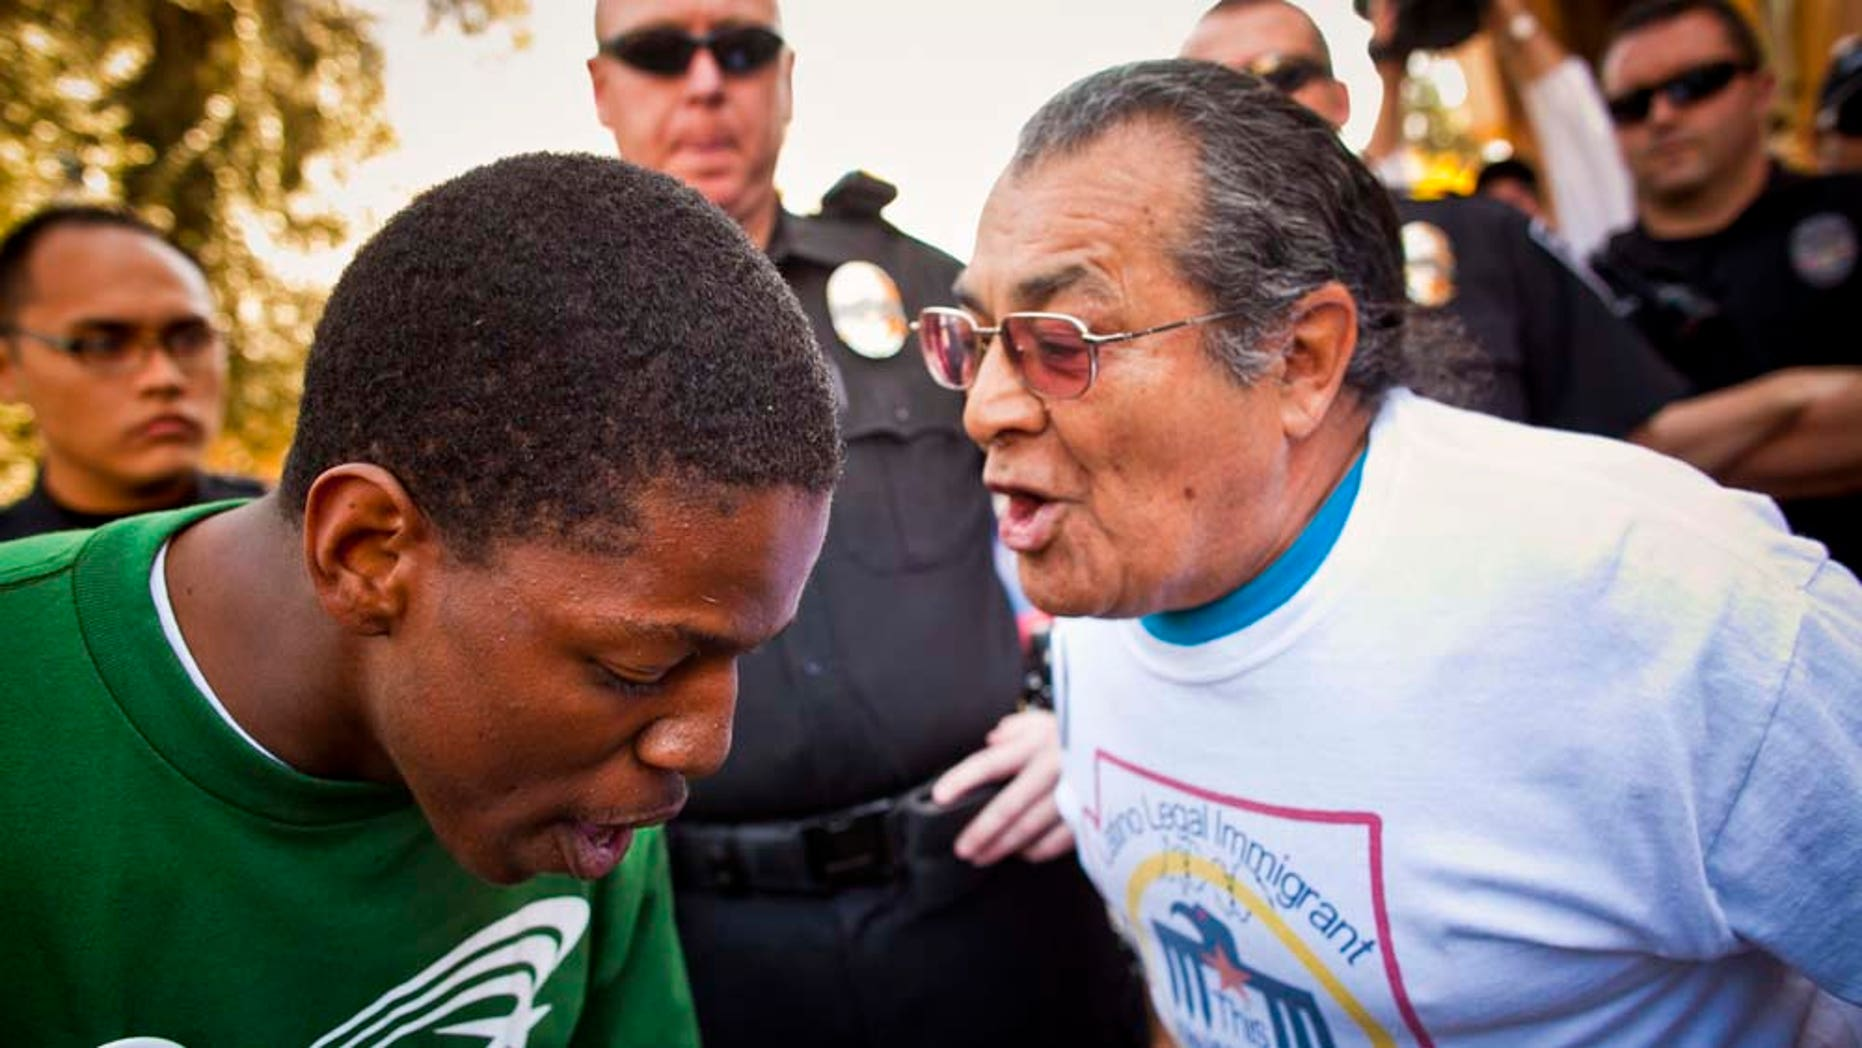 Jarvis Johnson, leftt, , a supporter of immigrants' rights and Arthur Olivas, right,  a supporter of Sen Russell Pearce's anti-immigrant bills, debate  at the State Capitol in Phoenix Tuesday, Feb. 22, 2011.   A sweeping bill that targets illegal immigrants in public housing, public benefits and the workplace drew vocal opposition Tuesday from Democrats.  The Senate Appropriations Committee was considering the 29-page bill Tuesday, a day after it was introduced by Republican Senate President Russell Pearce, who authored last year's controversial SB 1070. That law touched off a nationwide debate on whether states can enforce federal immigration laws. Democrats don't have the votes to block the measure, but the topic brought out supporters on both sides and security at the Senate was heightened, with about a dozen uniformed police officers deployed in and around the building. (AP Photo/The Arizona Republic, Jack Kurtz)